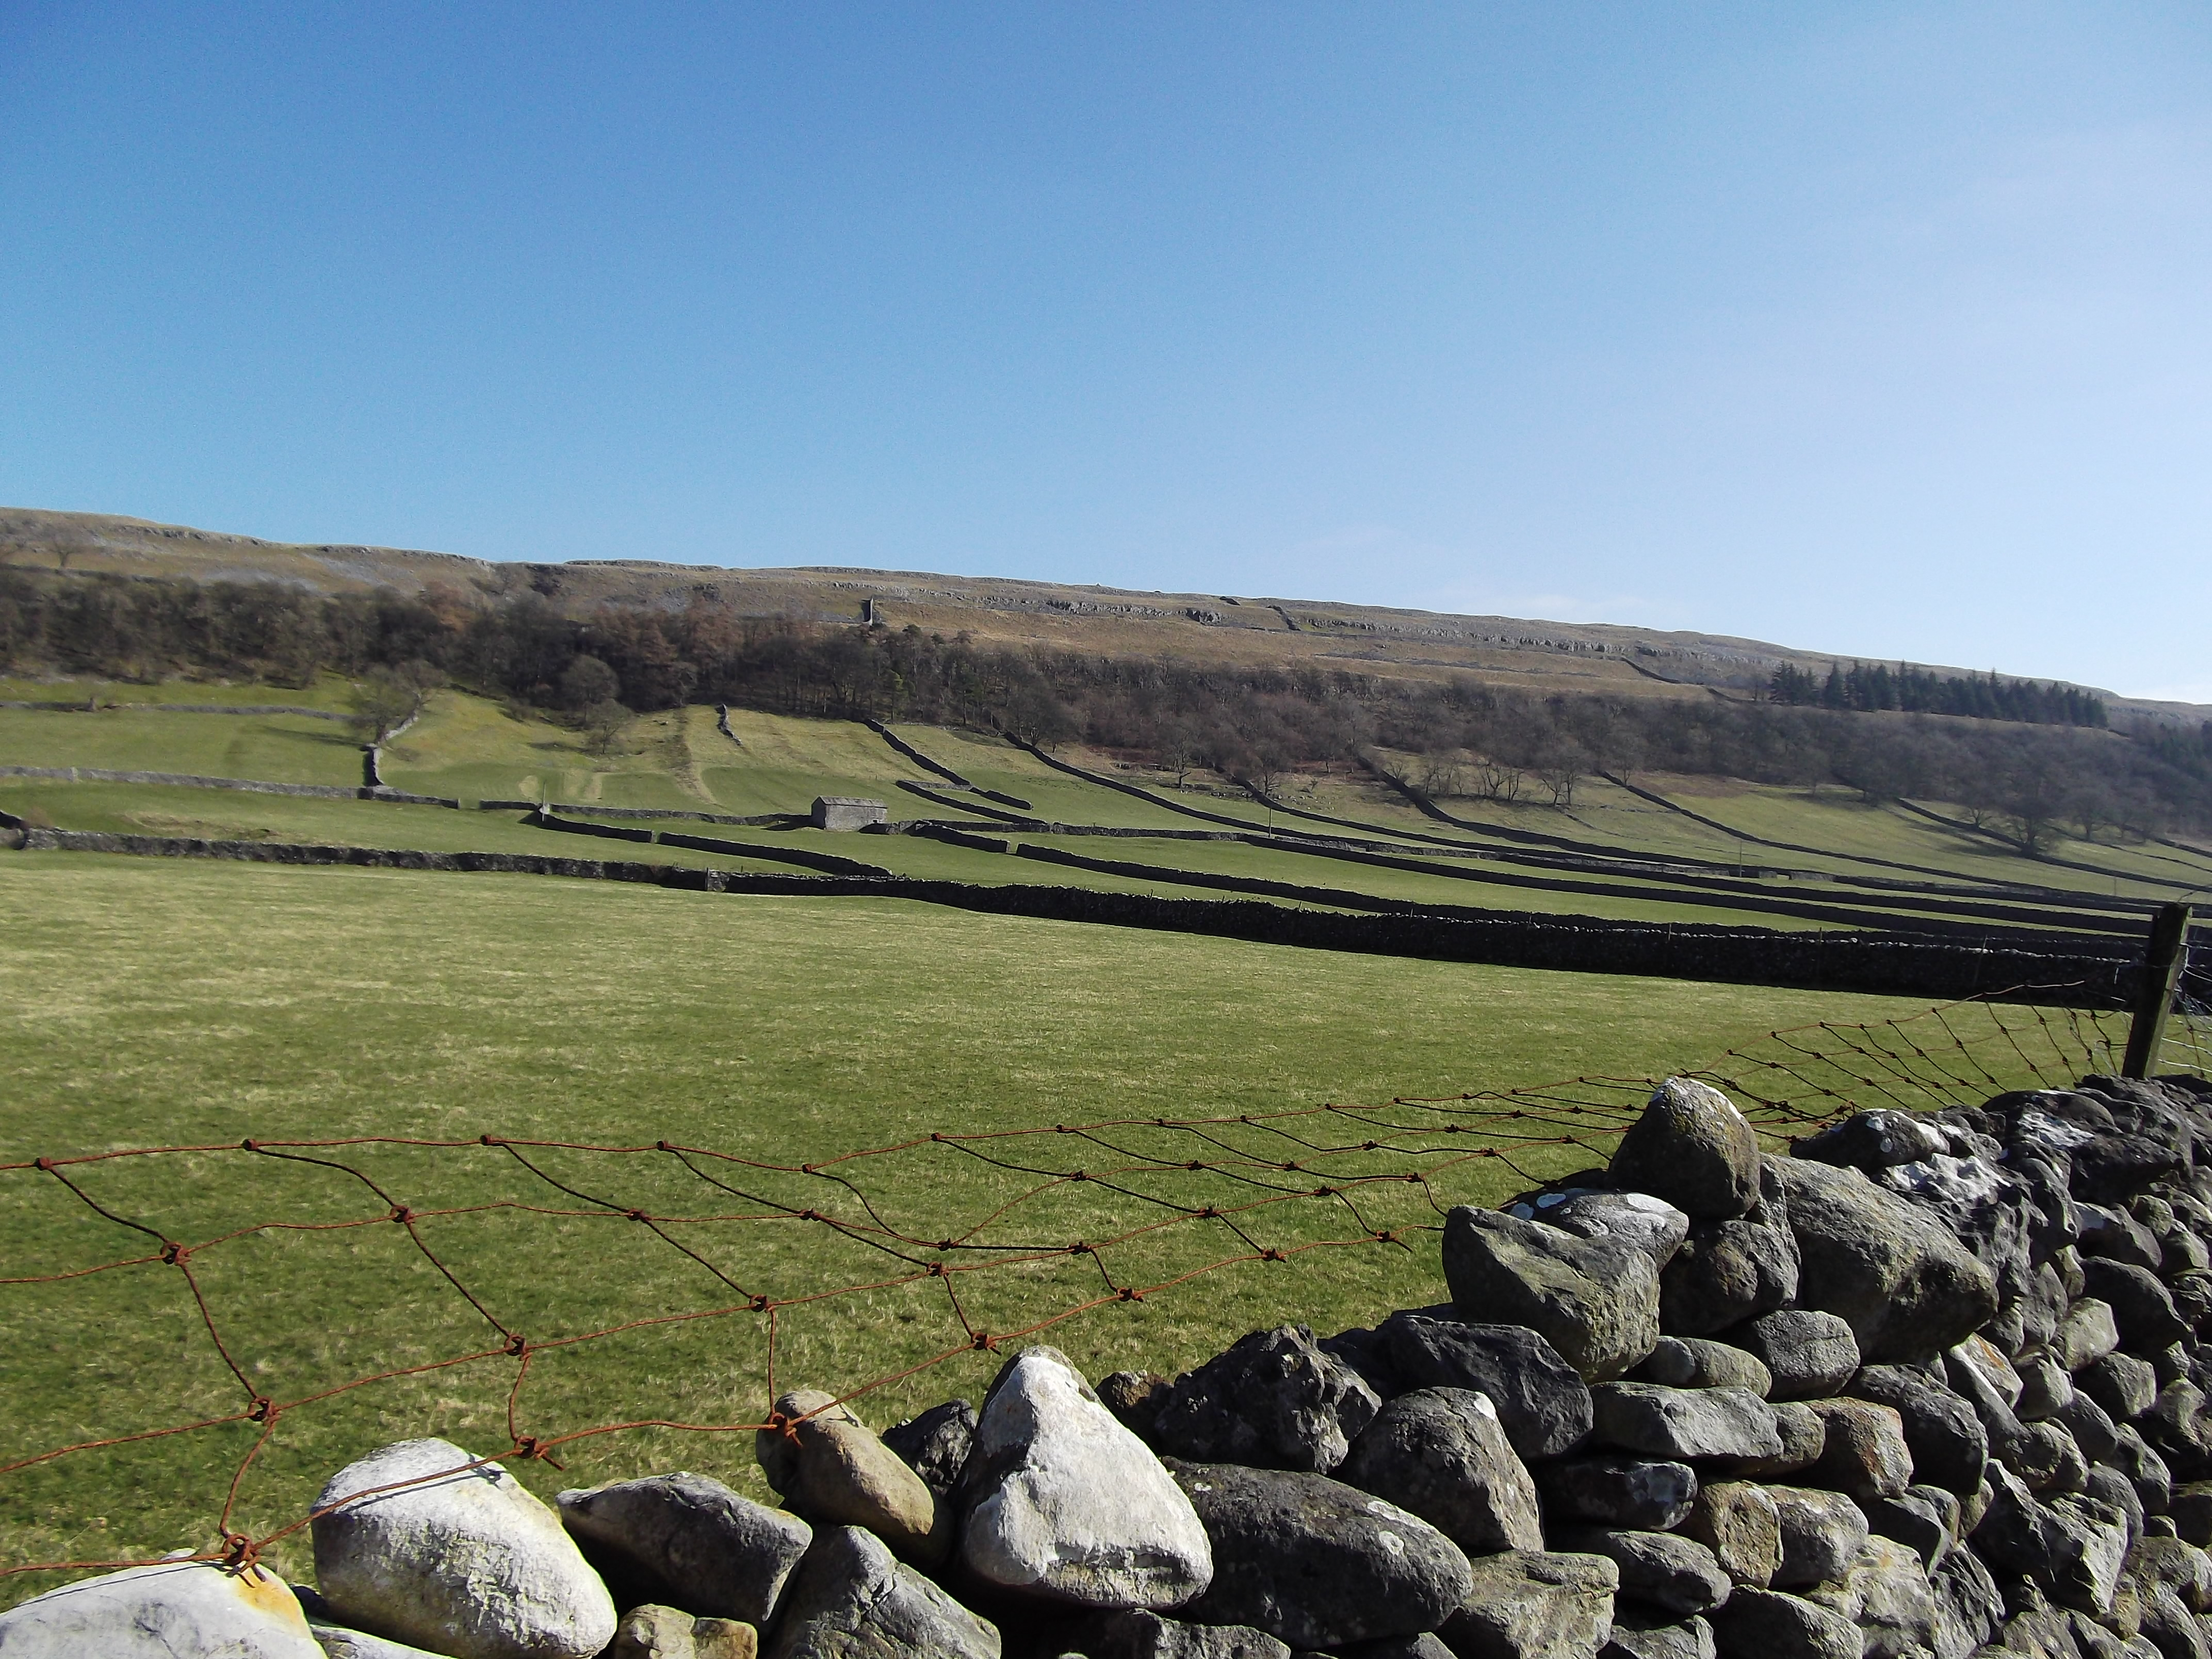 A wide open space - Wharfedale.